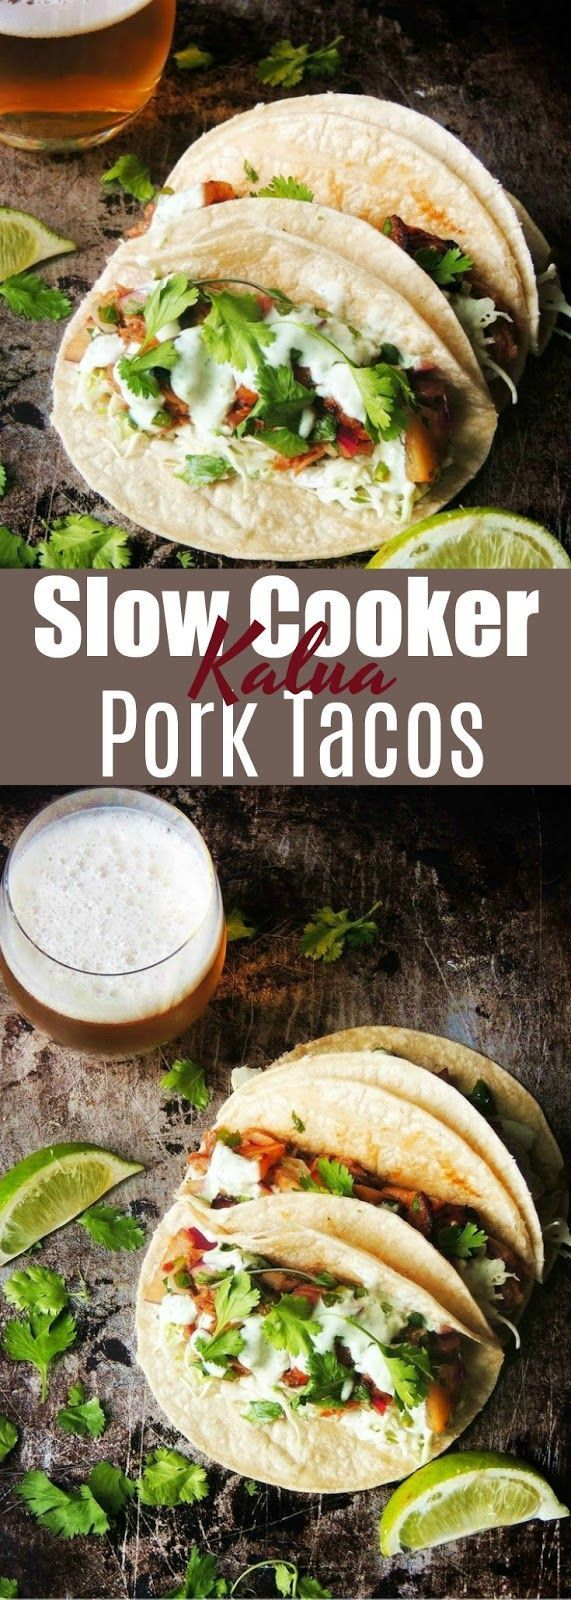 This Slow Cooker Kalua Pork Tacos recipe has Tender juicy pork, in a Hawaiian inspired sauce, wrapped in a warm corn tortilla. Your taste buds will say #hawaiianfoodrecipes